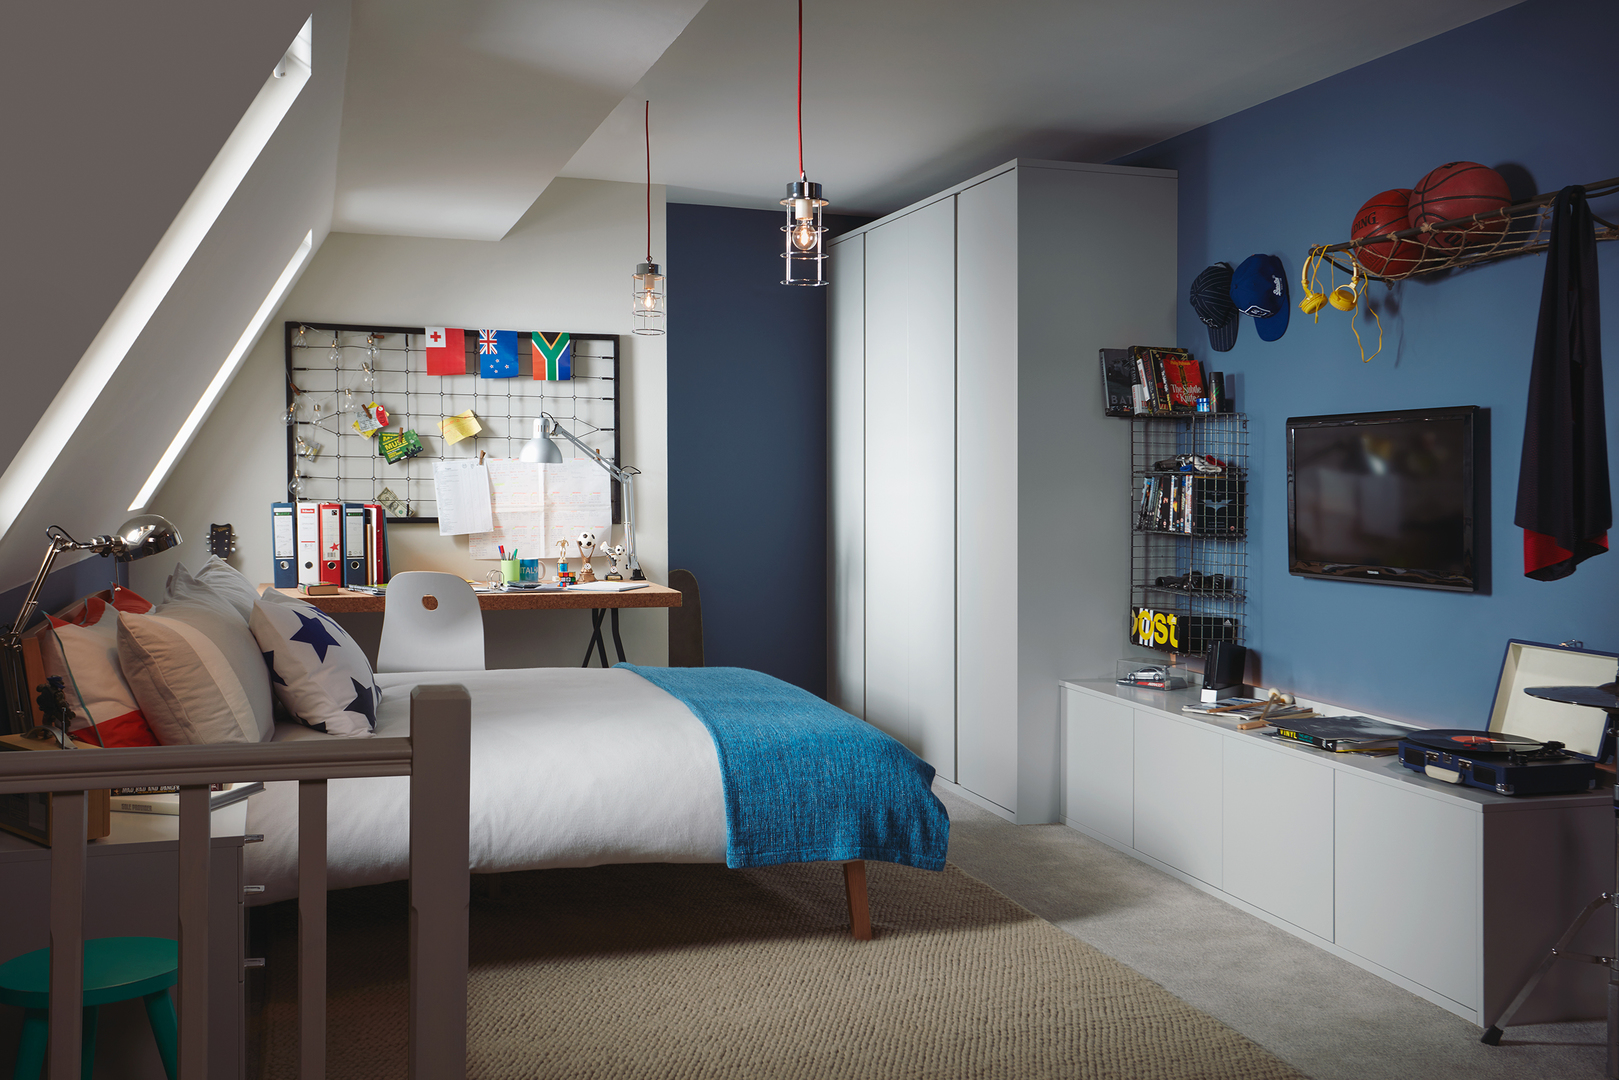 The Home Consultancy Bedrooms By Kindred